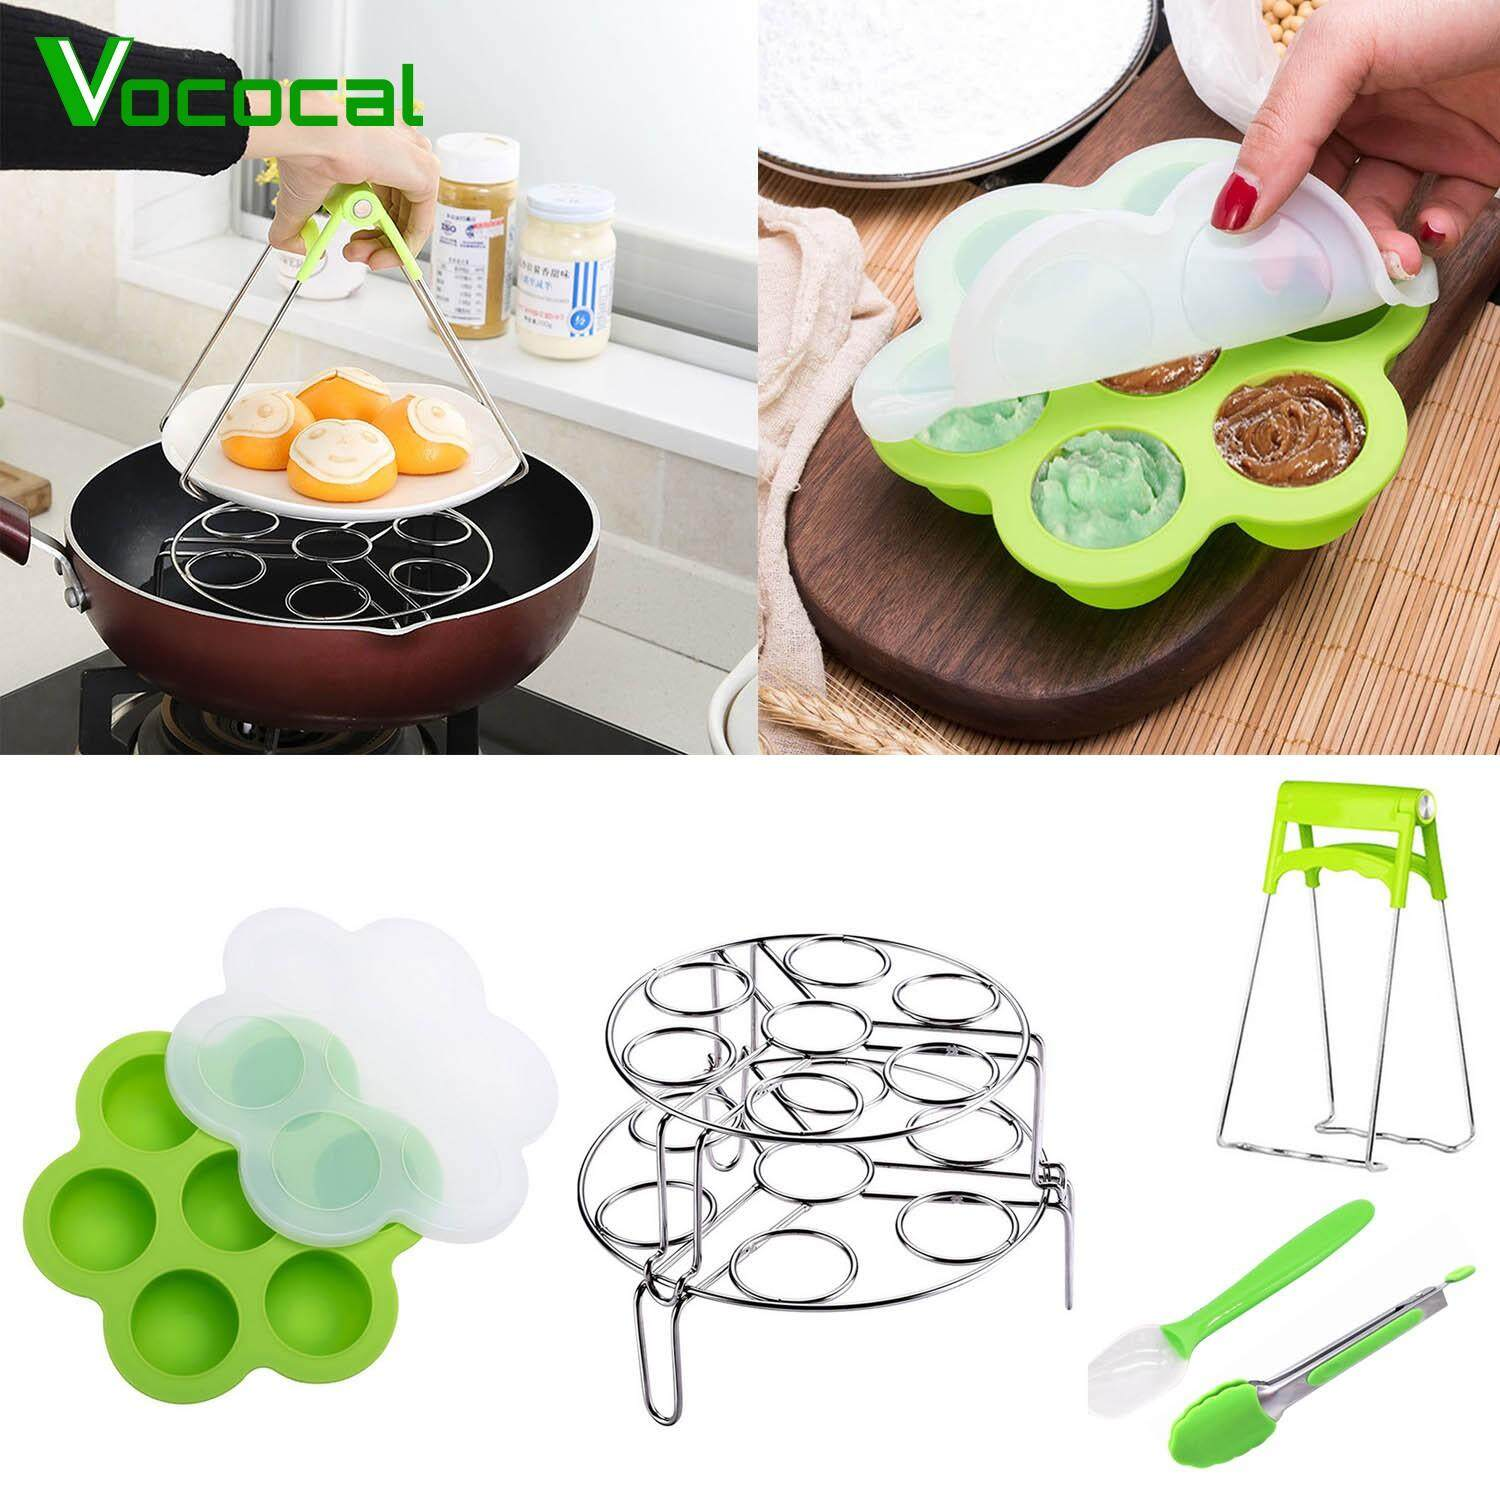 【free Shipping】vococal 6in1 Kitchen Accessories Set Compatible With Instant Pot 2pcs Stainless Steel Egg Steamer Rack Stand Basket 7-Slot Egg Bite Molds Kitchen Tong Bowl Clip 7inch Spoon By Vococal Shop